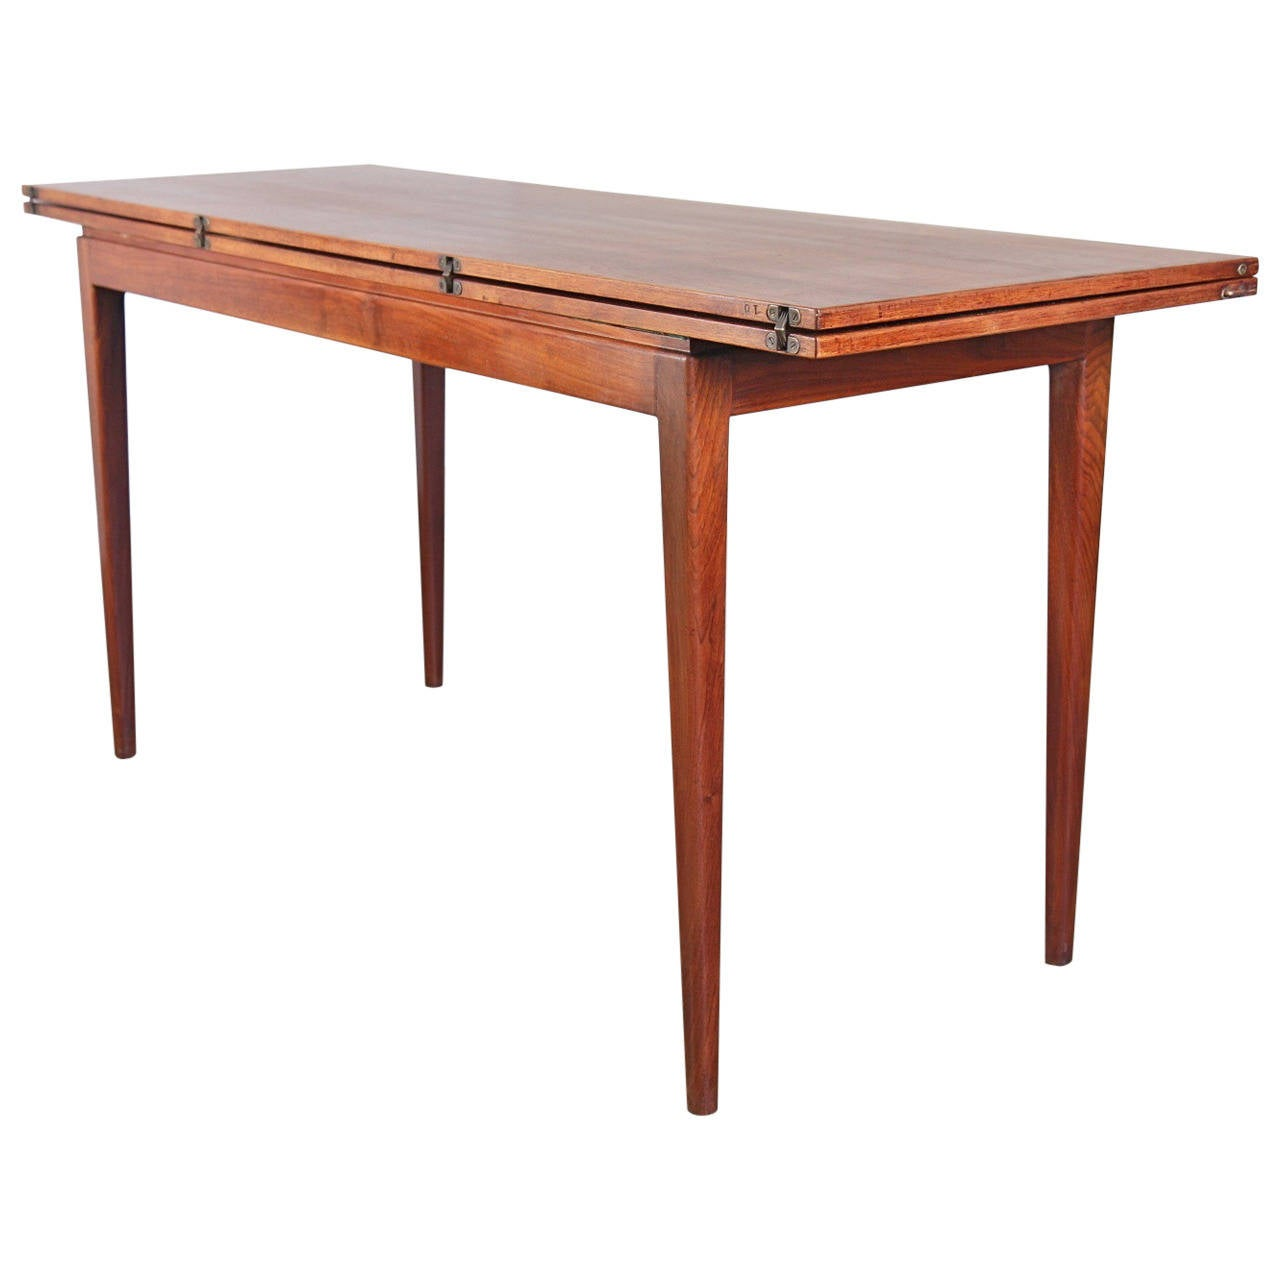 jens risom t 170 console dining table at 1stdibs